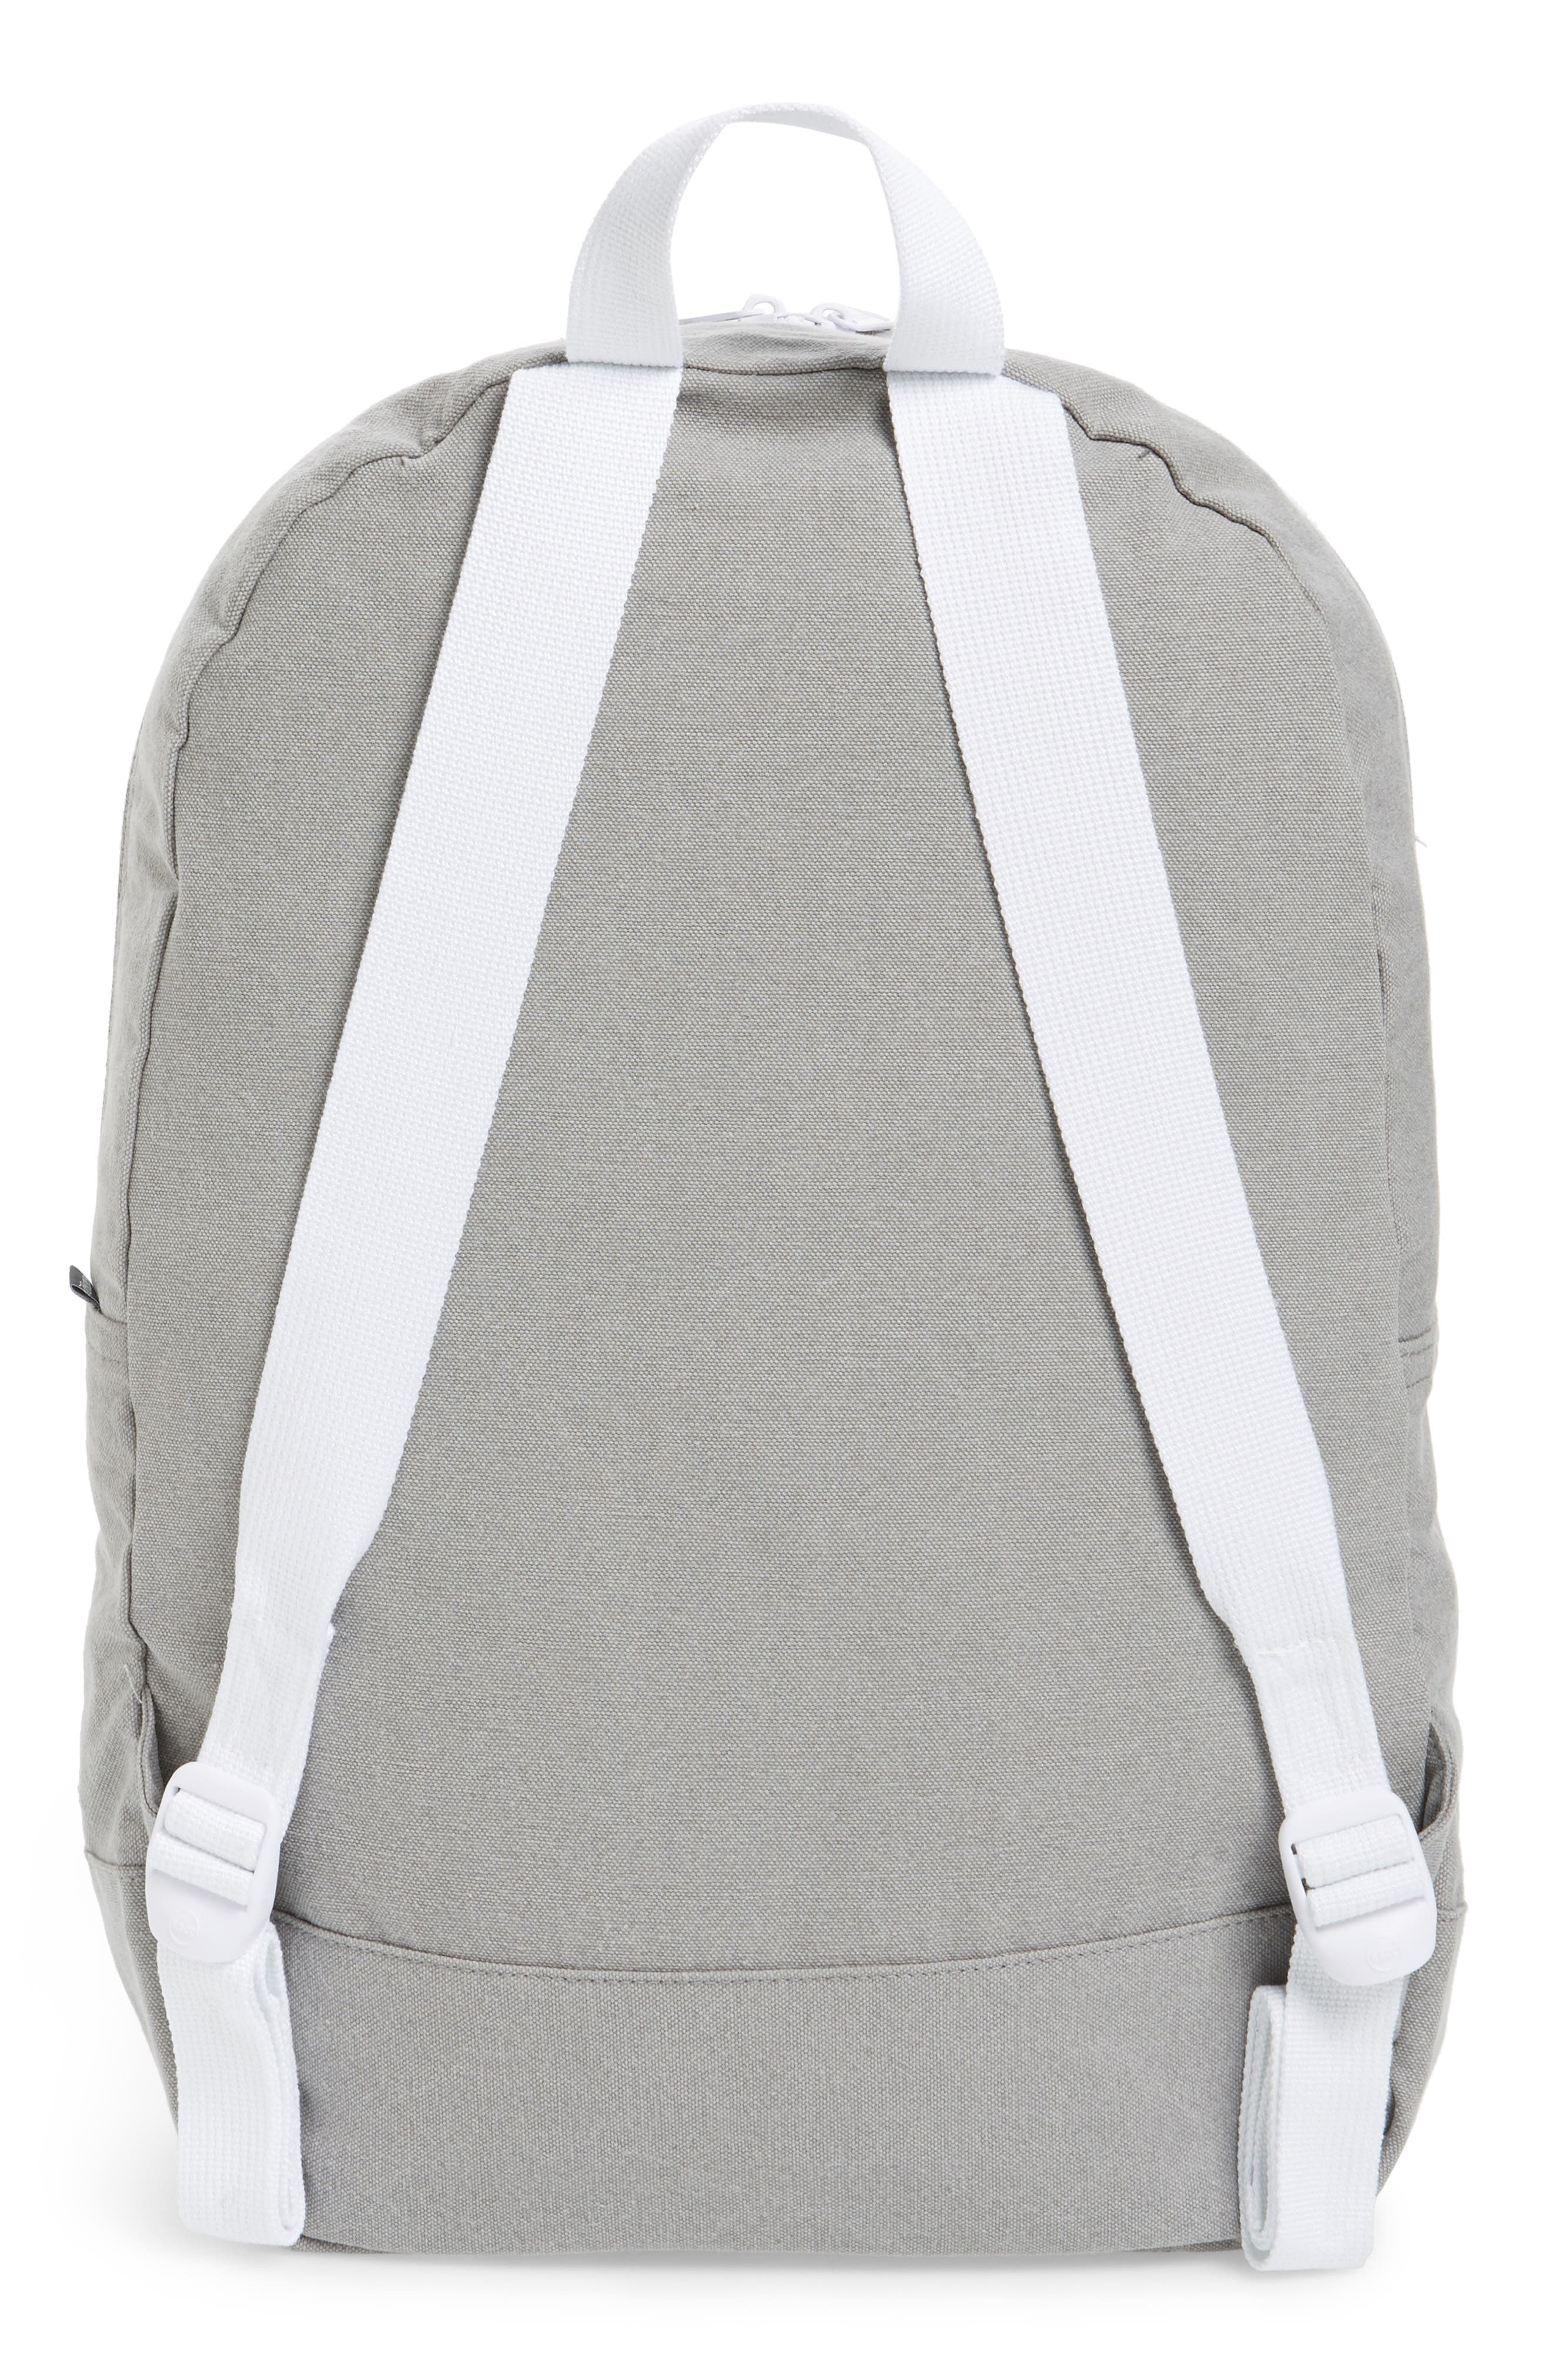 Cotton Casuals Daypack Backpack,                             Alternate thumbnail 23, color,